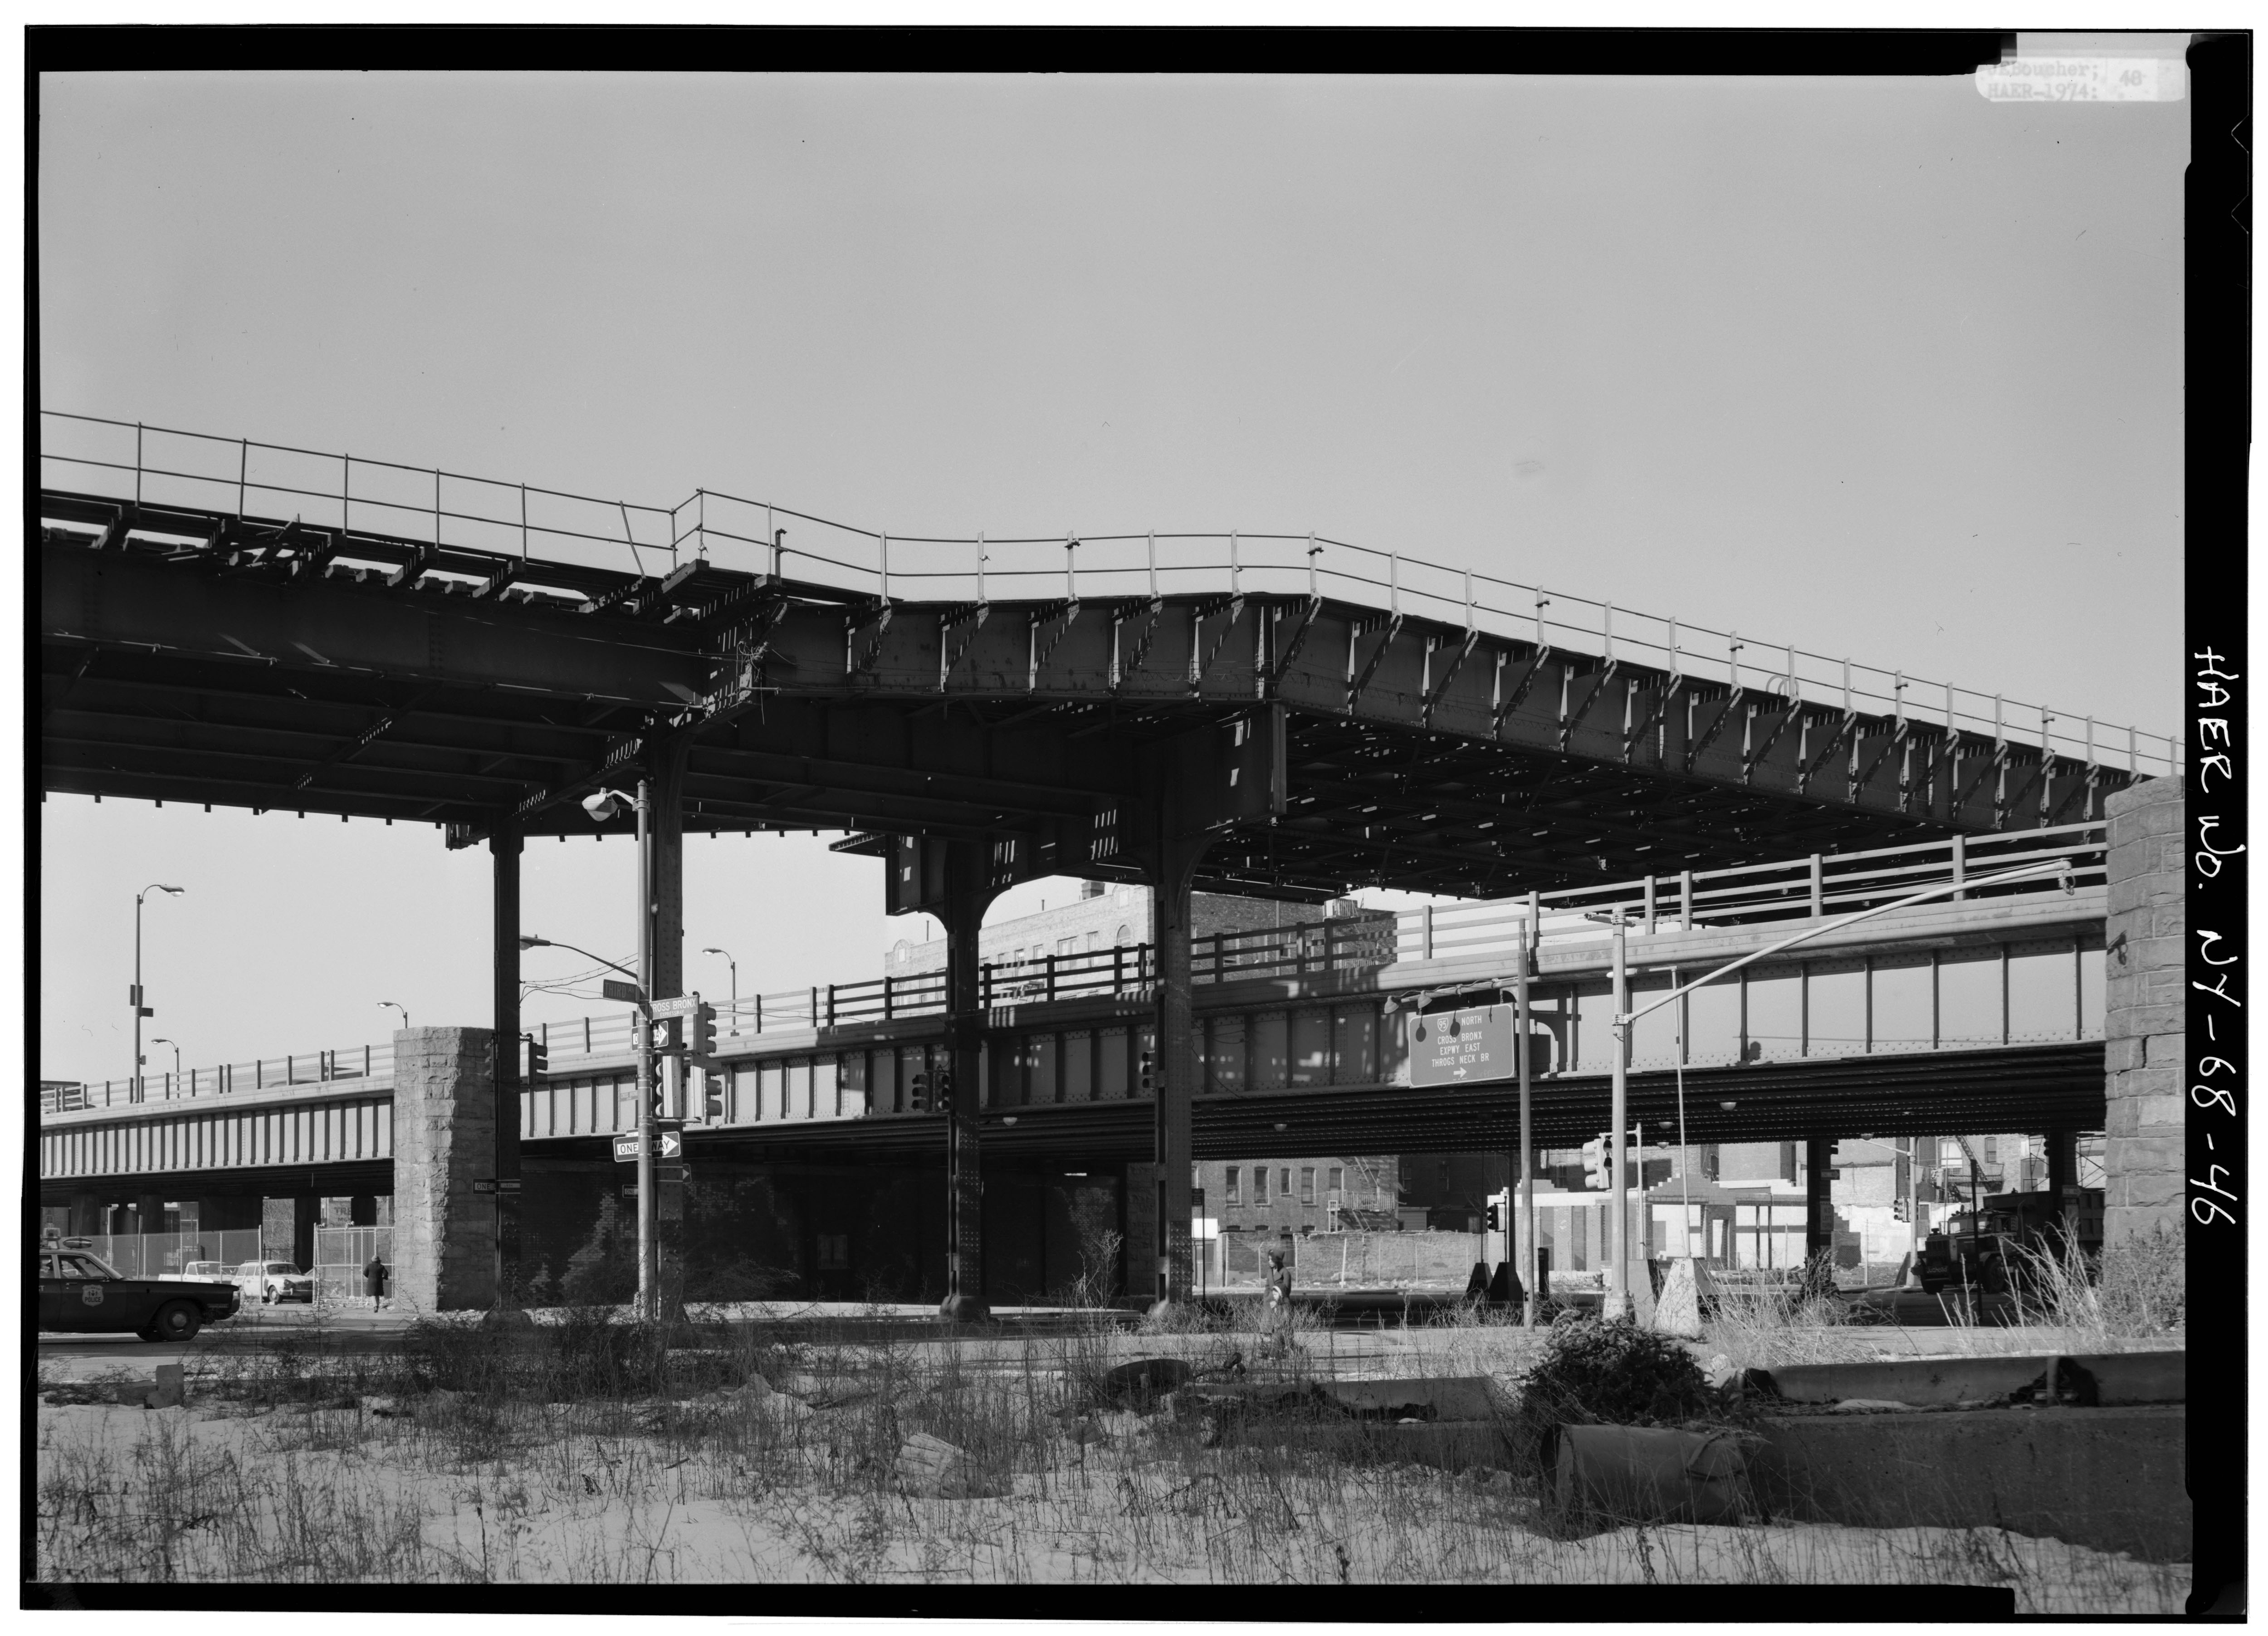 File:Looking northwest closer at Third Avenue Elevated over